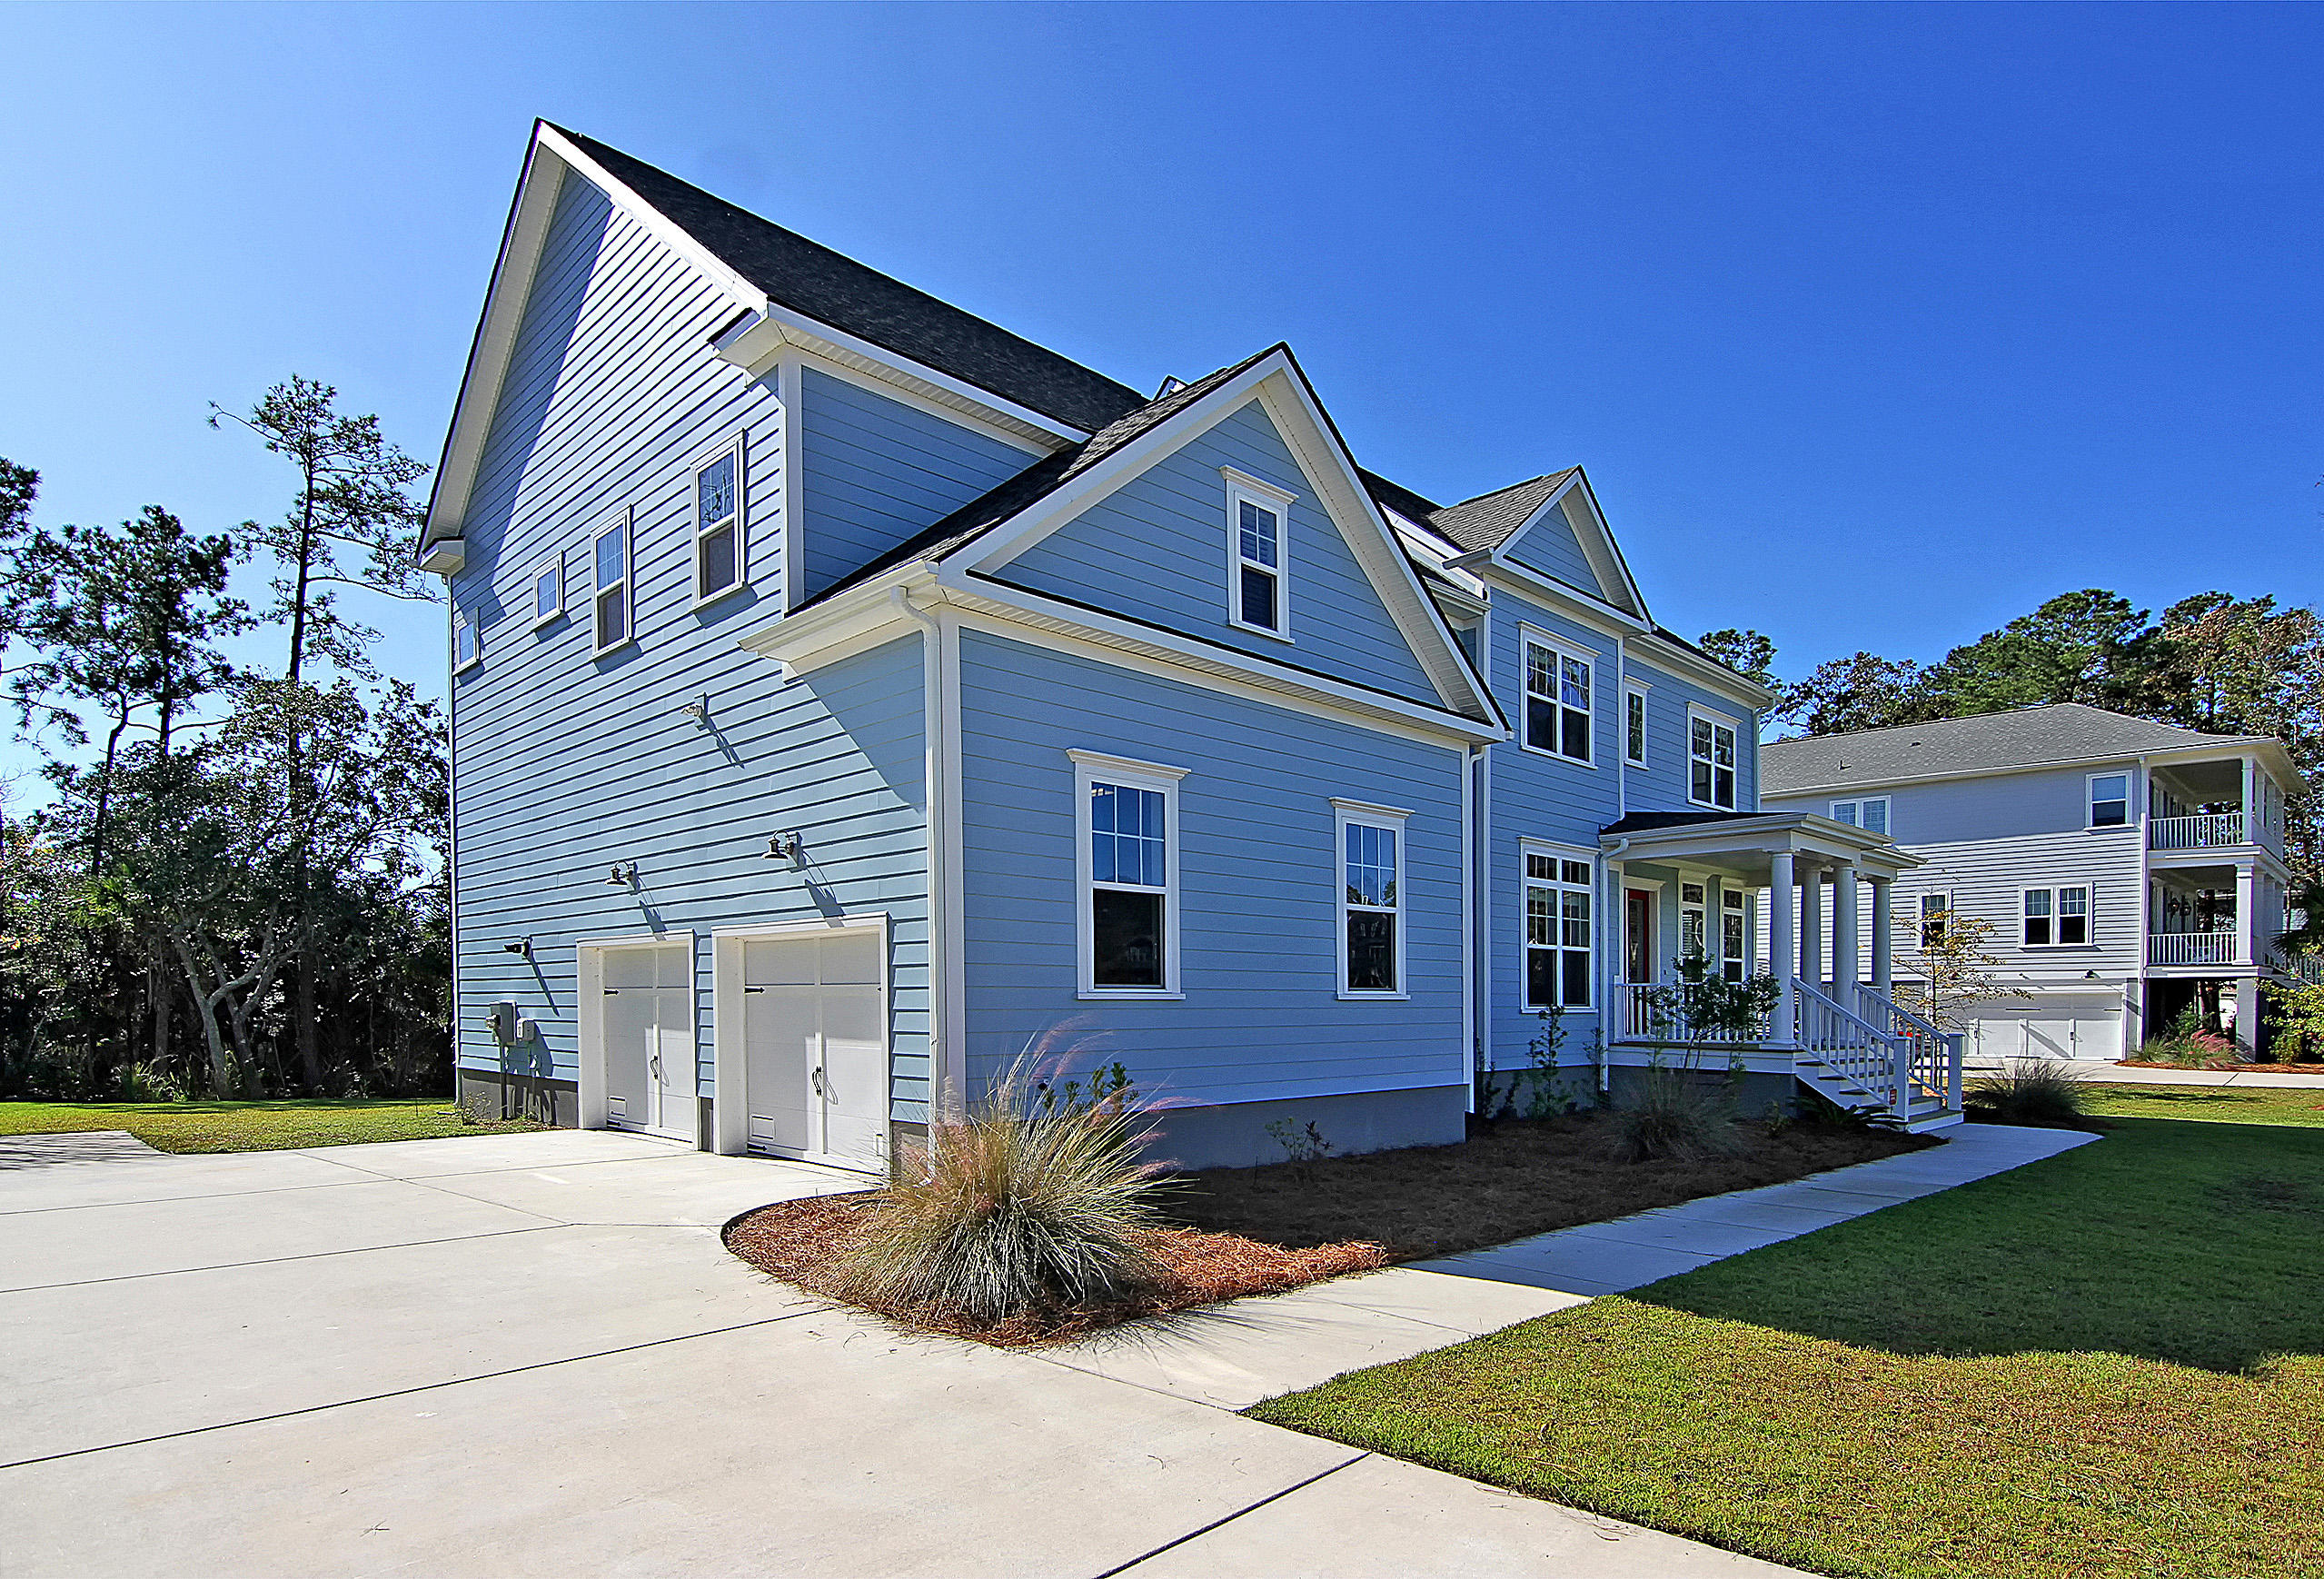 Dunes West Homes For Sale - 2984 Yachtsman, Mount Pleasant, SC - 32